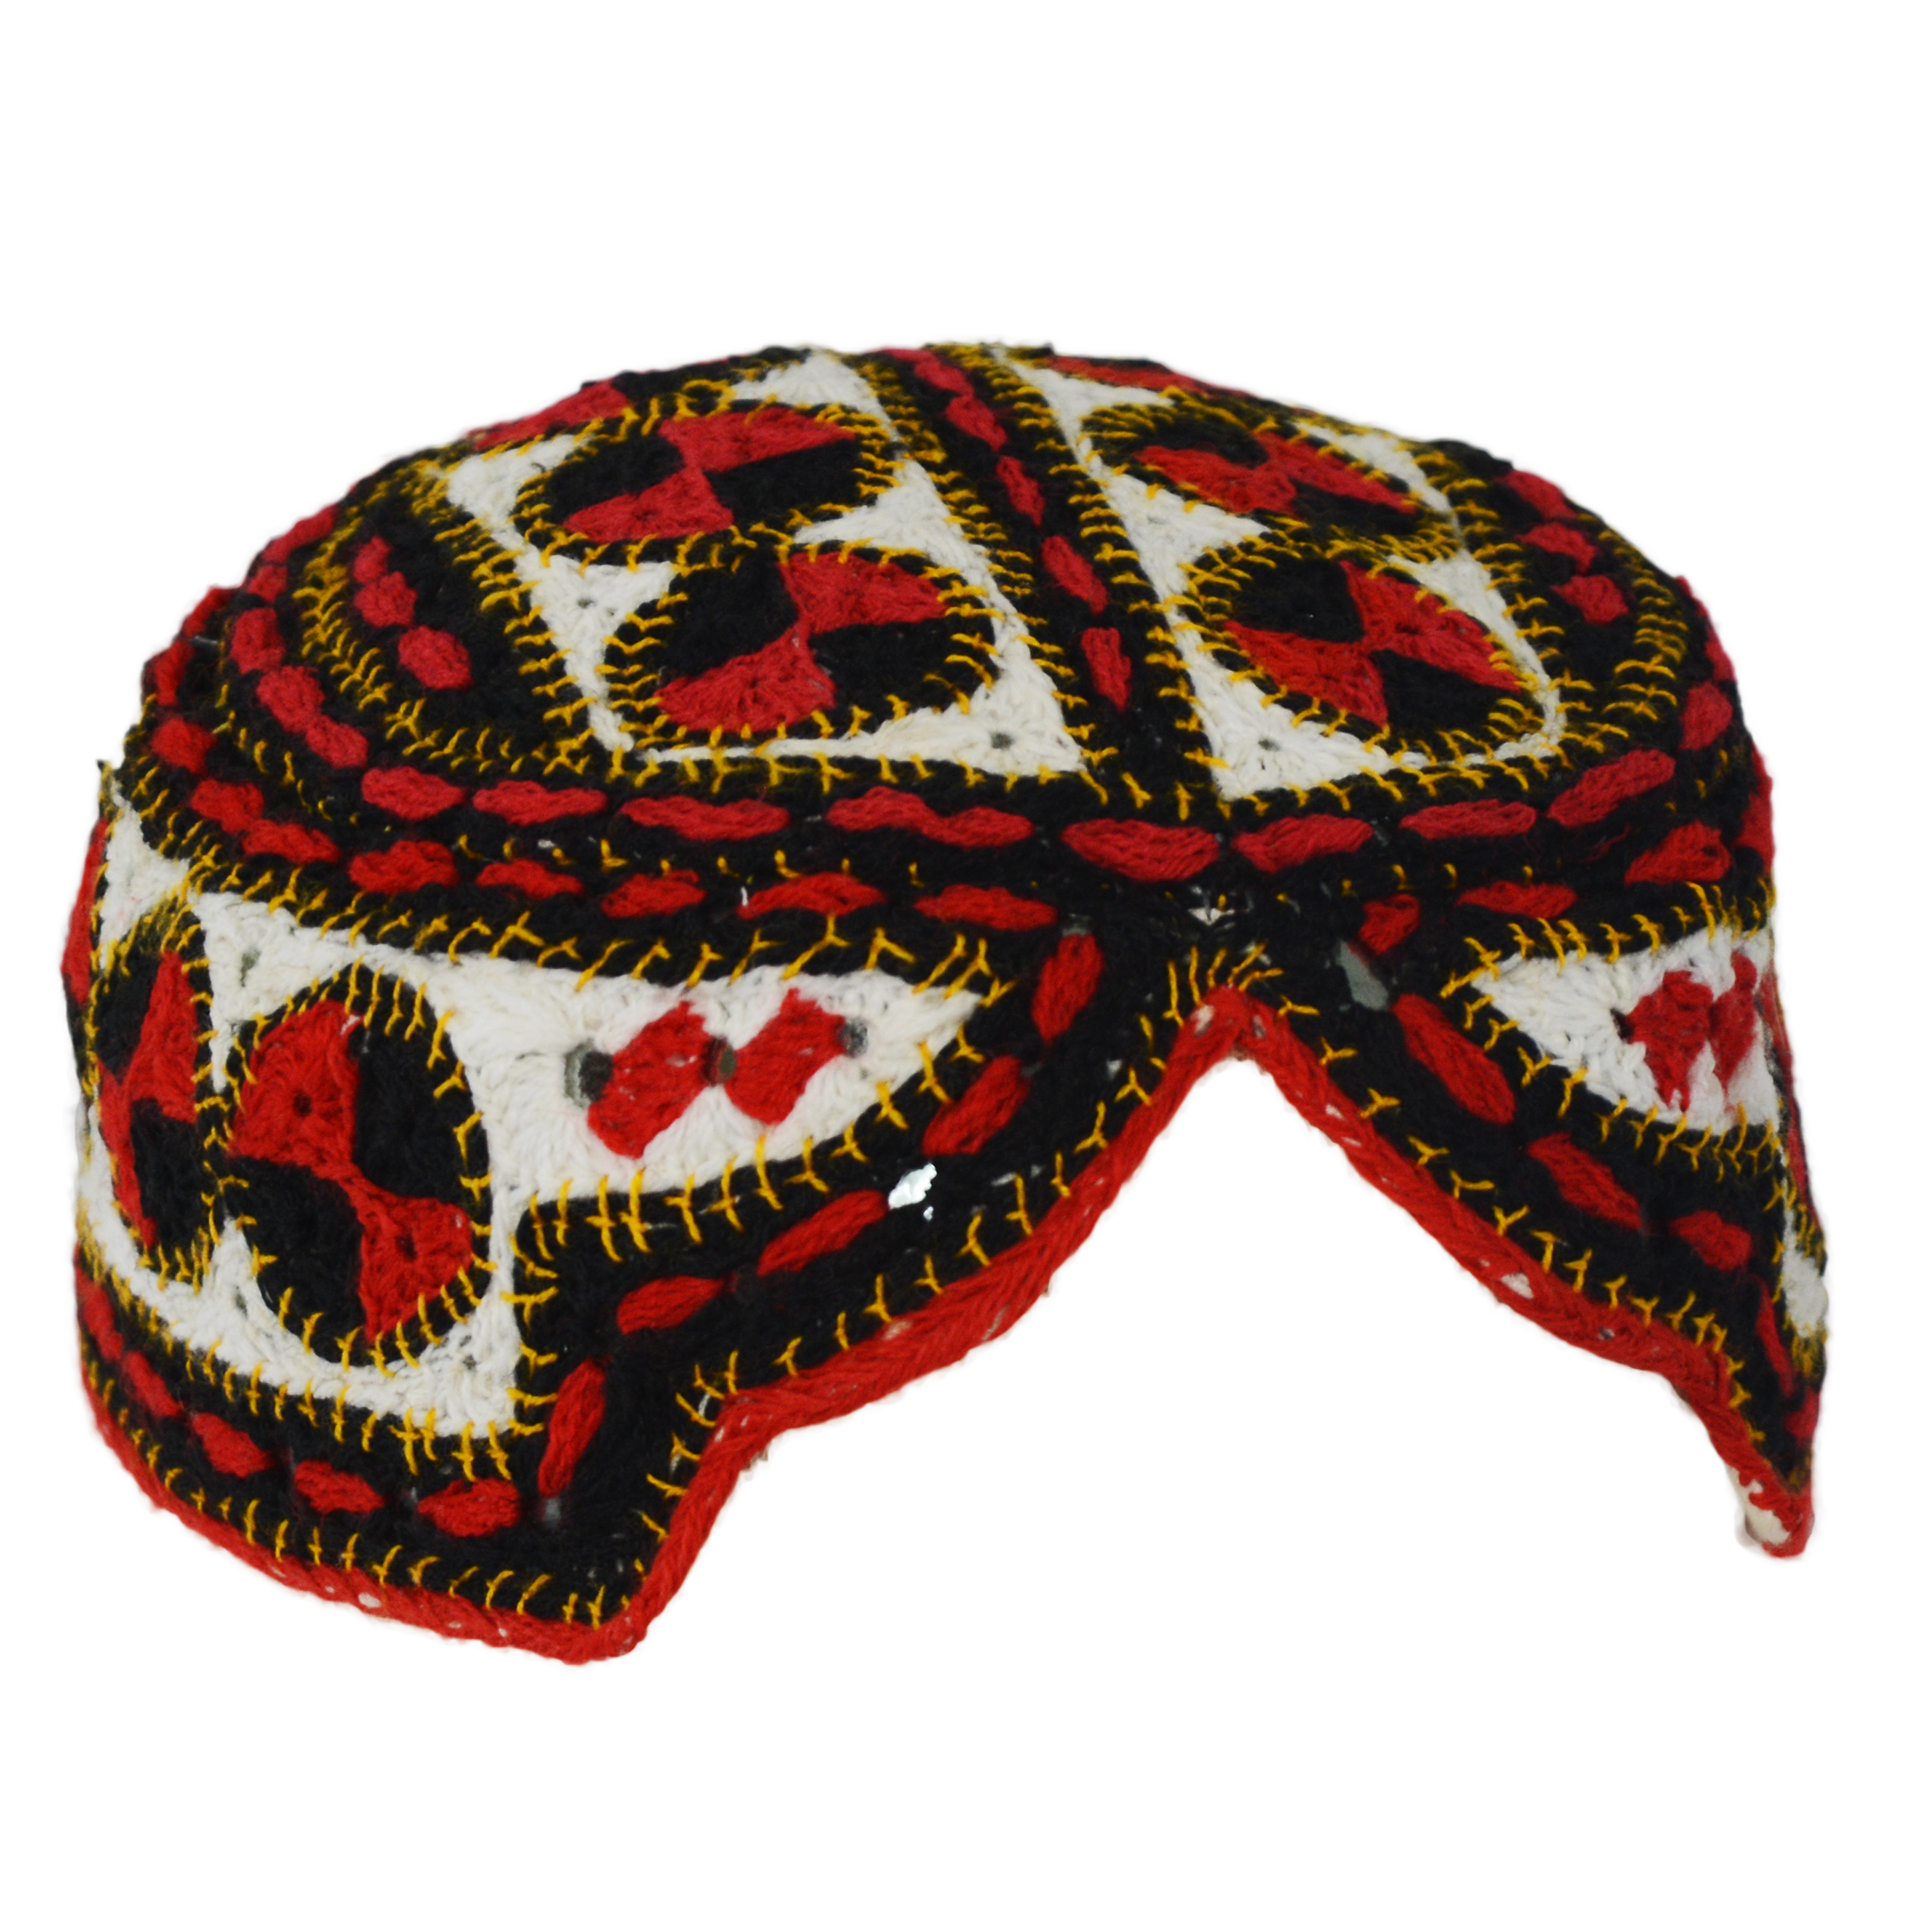 Sindhi Cap Shisha Embroidered Topi with Circular Multicolored Patterns ME713 Black and White